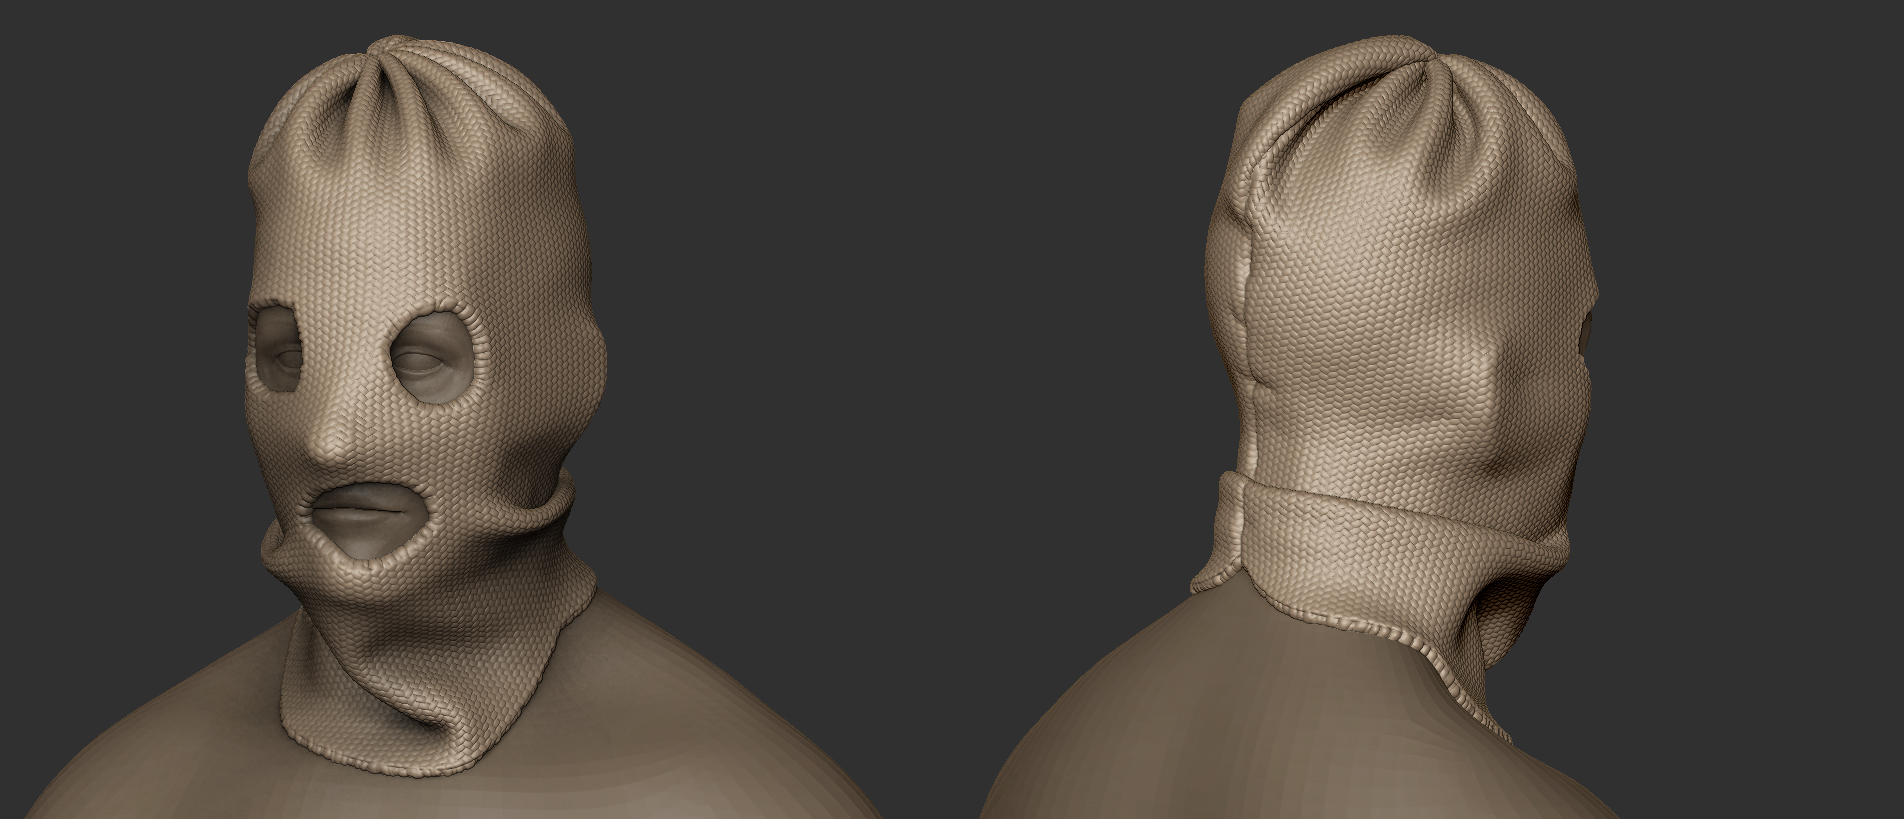 Devblog 72 rust next week id like to have the balaclava finished and id also like to have started and finished a bandanna heck i may even make two versions of the malvernweather Gallery